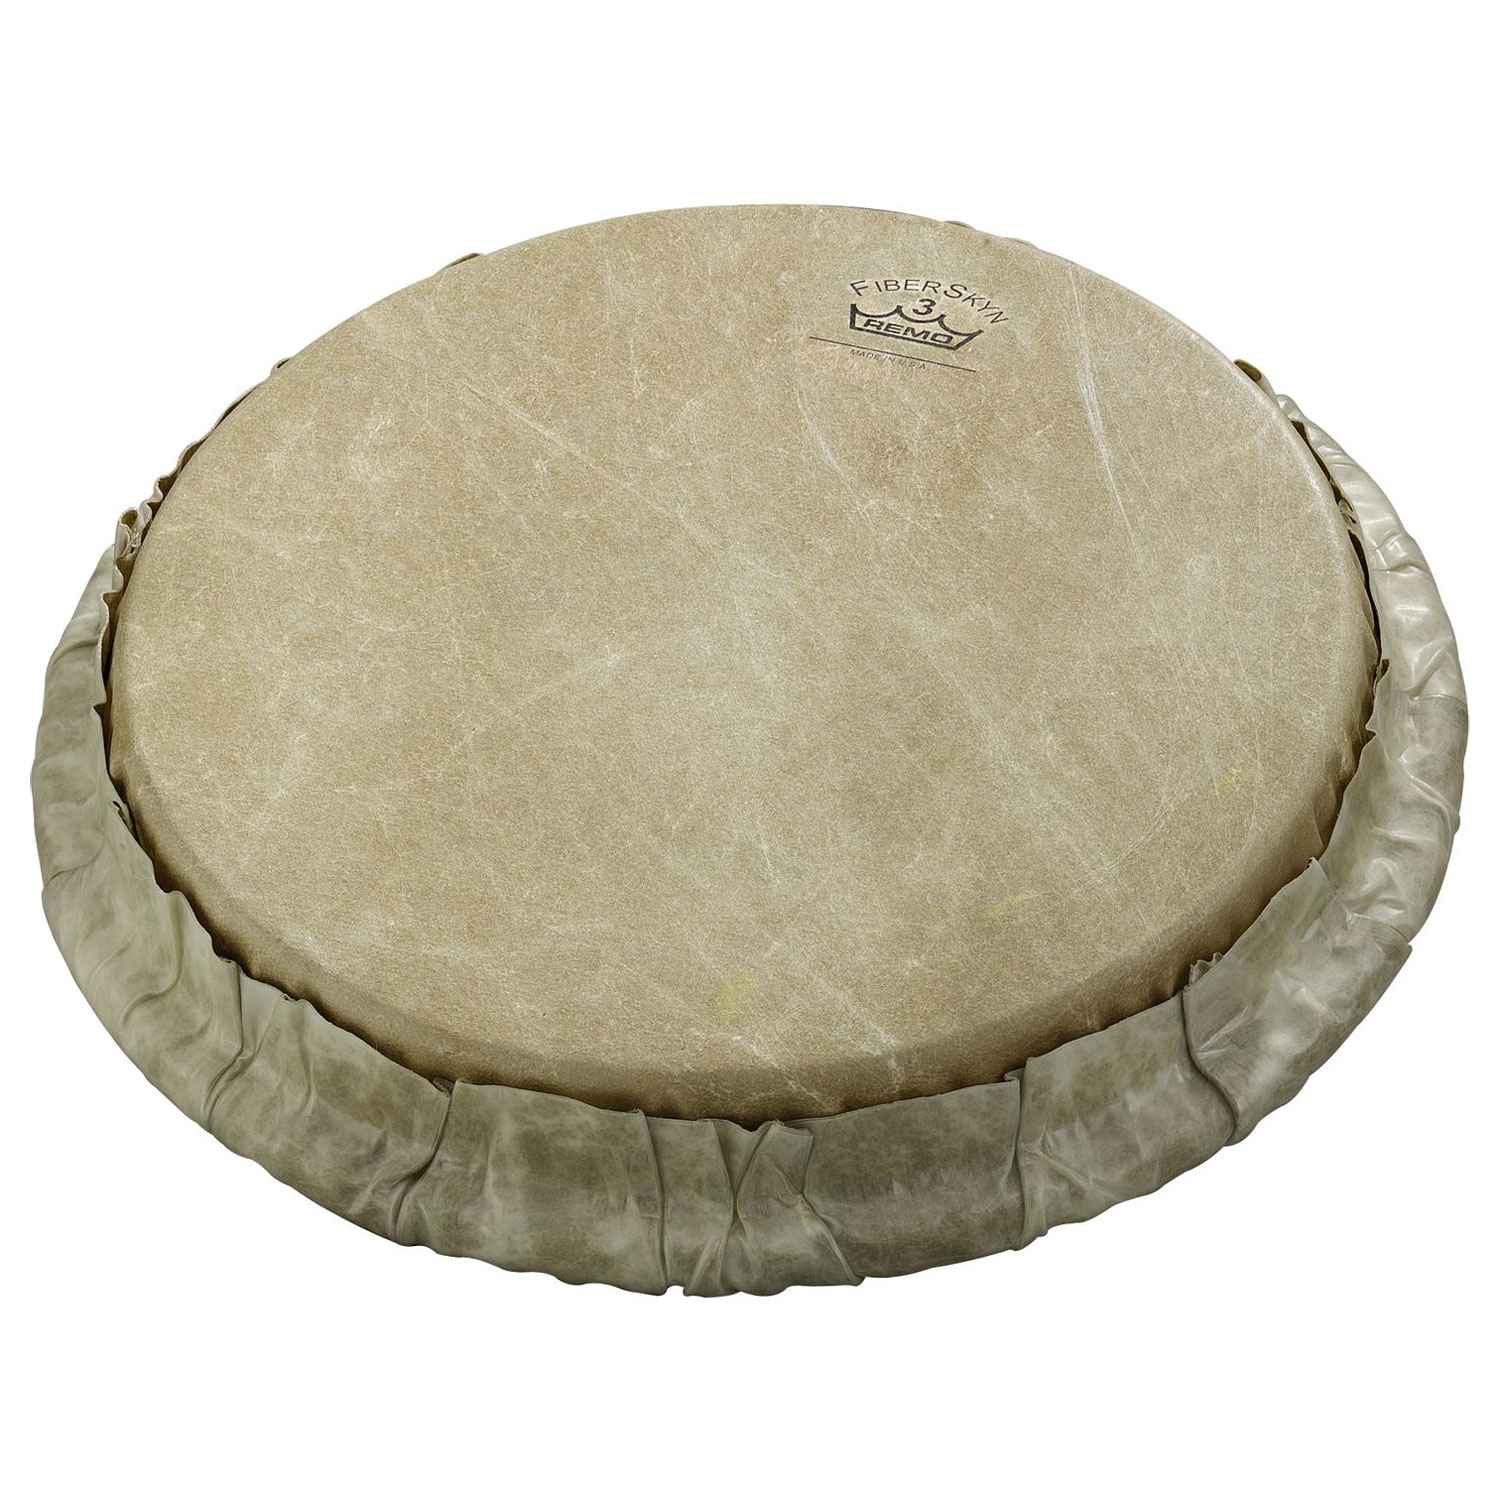 "Remo 8.5"" Tucked Fiberskyn Bongo Drum Head"